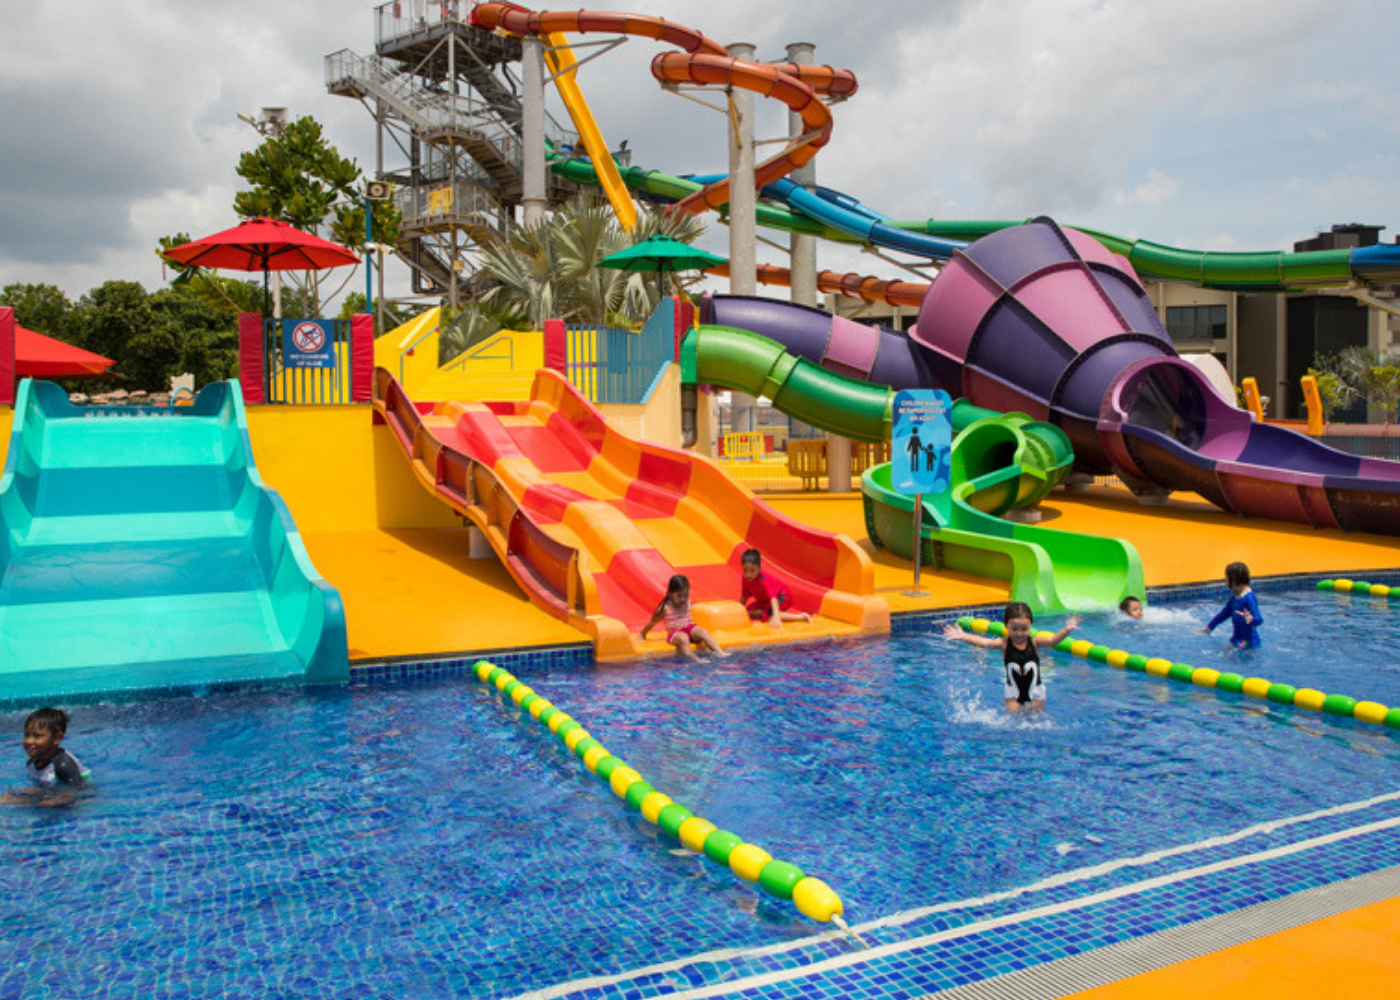 Water park slides and rides